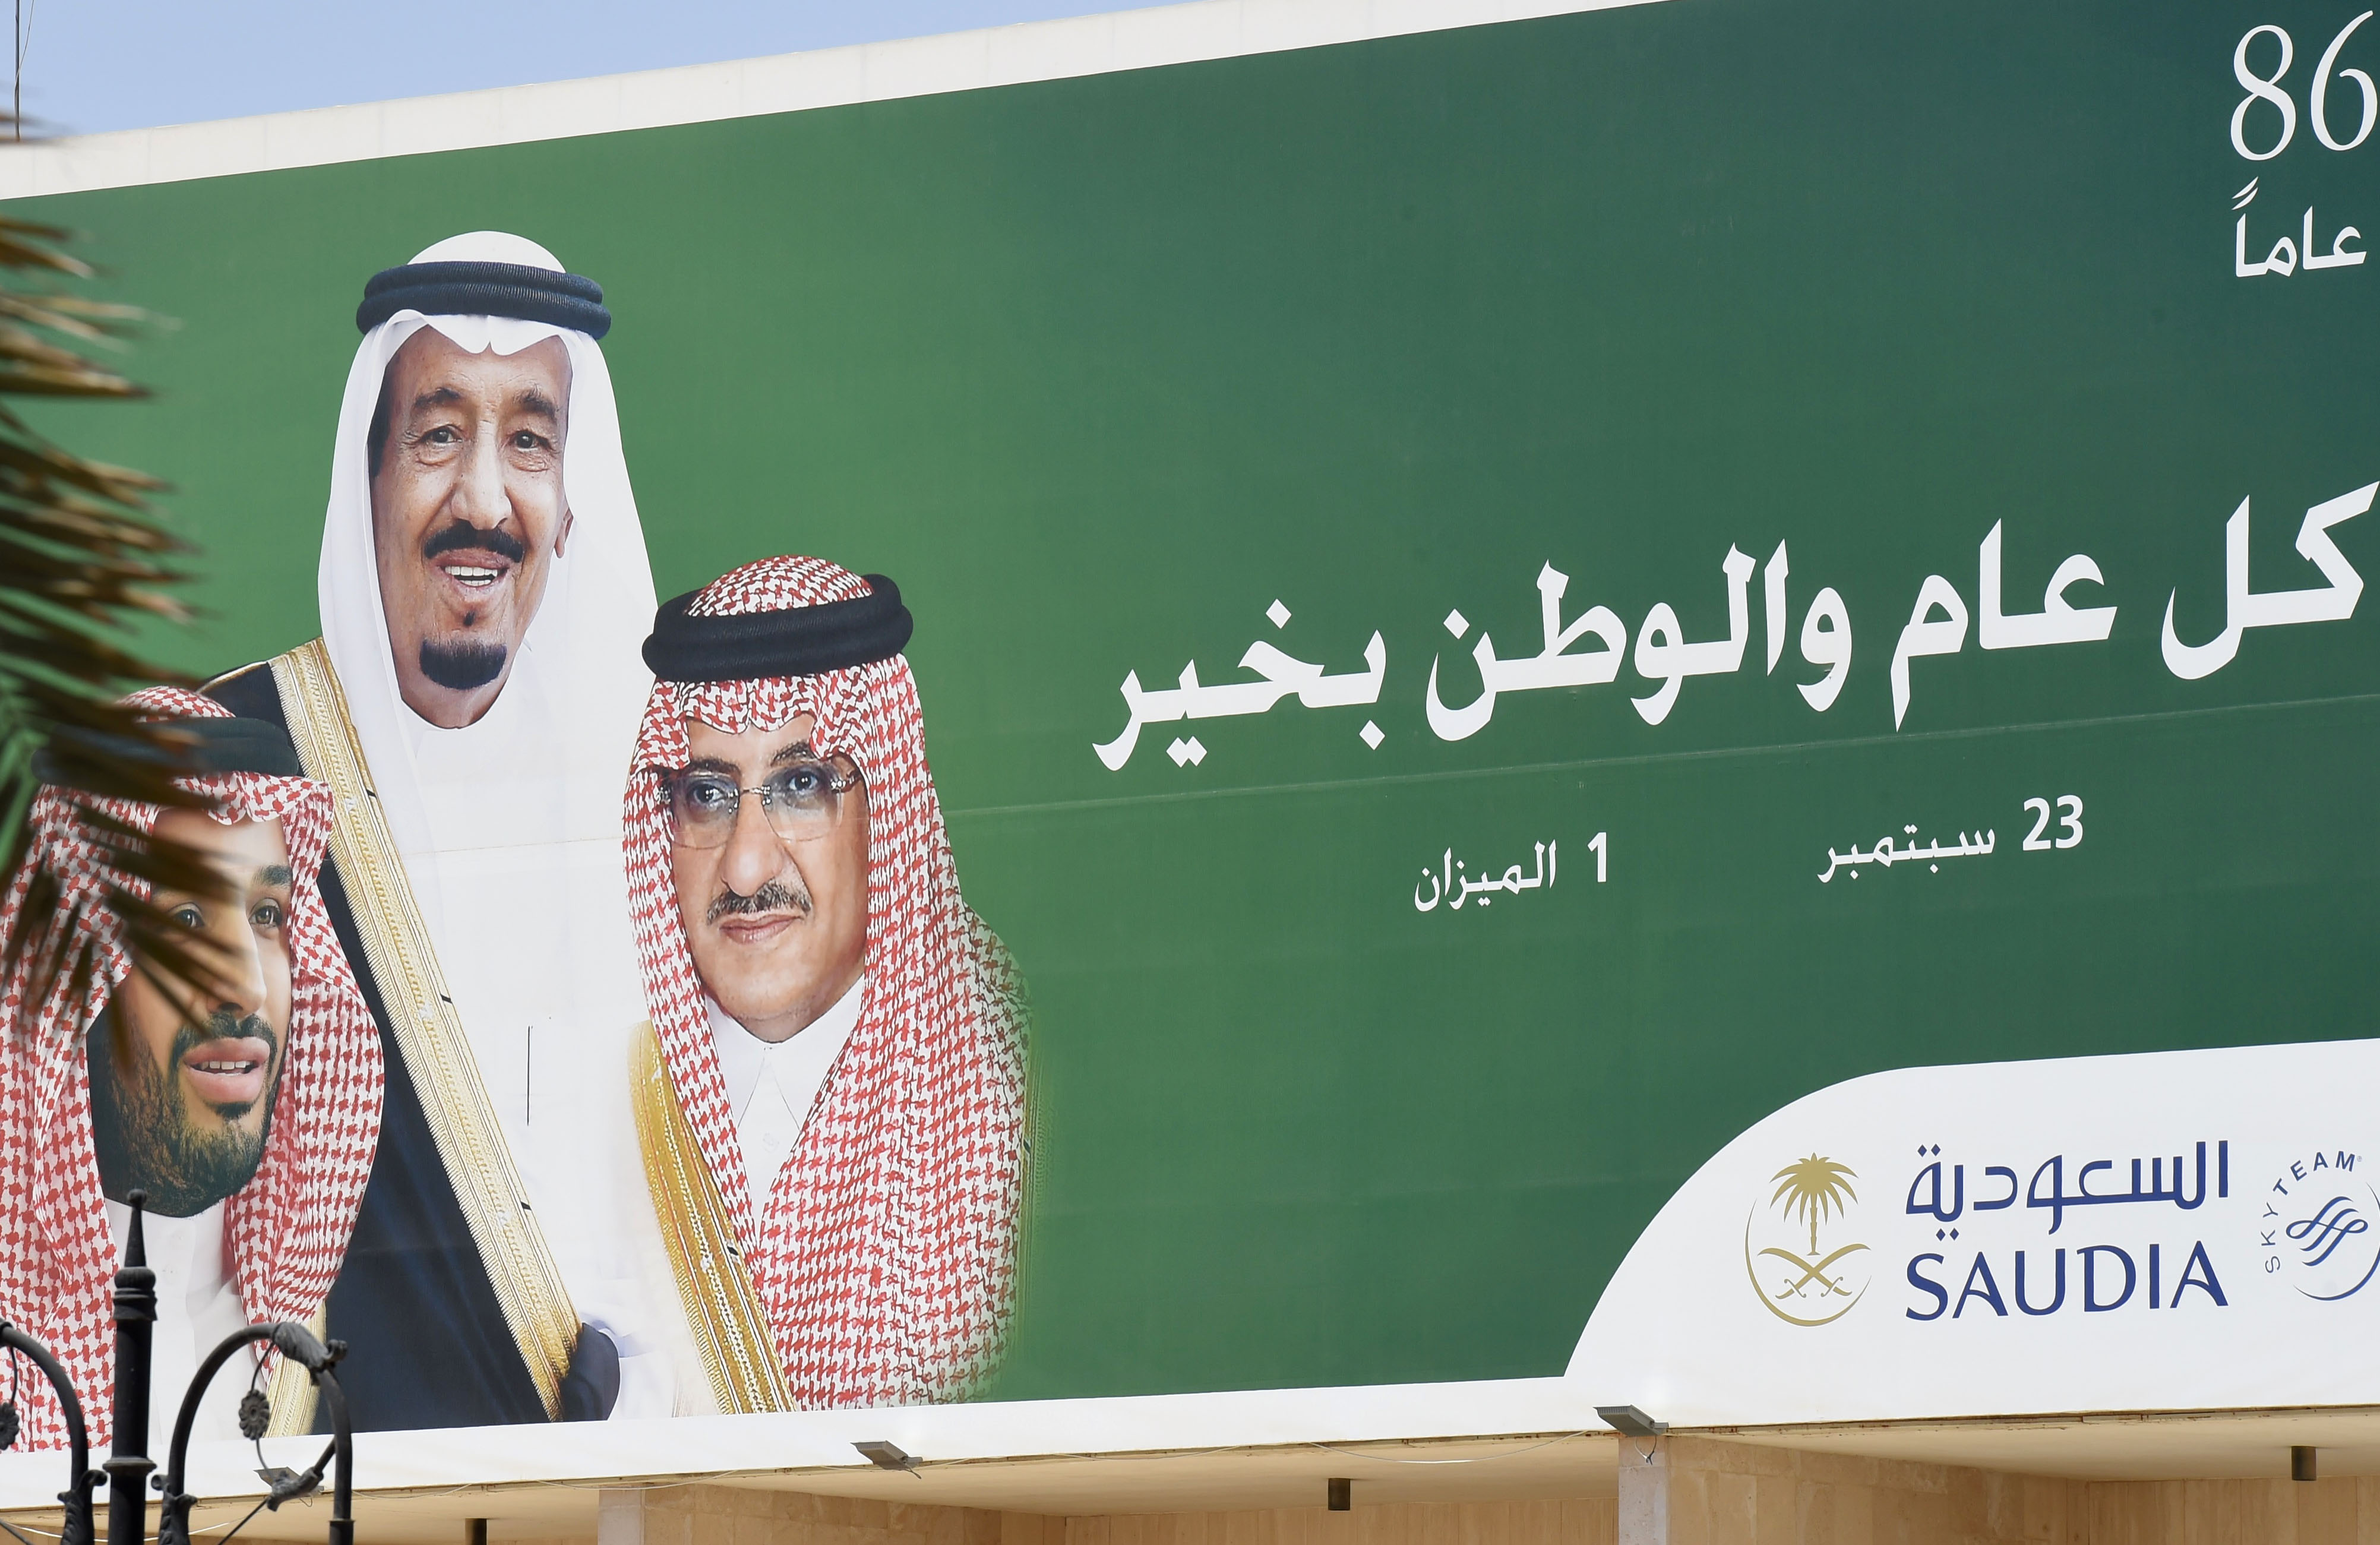 A picture taken on June 6, 2017 shows a poster of Saudi King Salman (C), former Crown Prince and Interior Minister Mohammed bin Nayef (R) and new Crown Prince Mohammed bin Salman